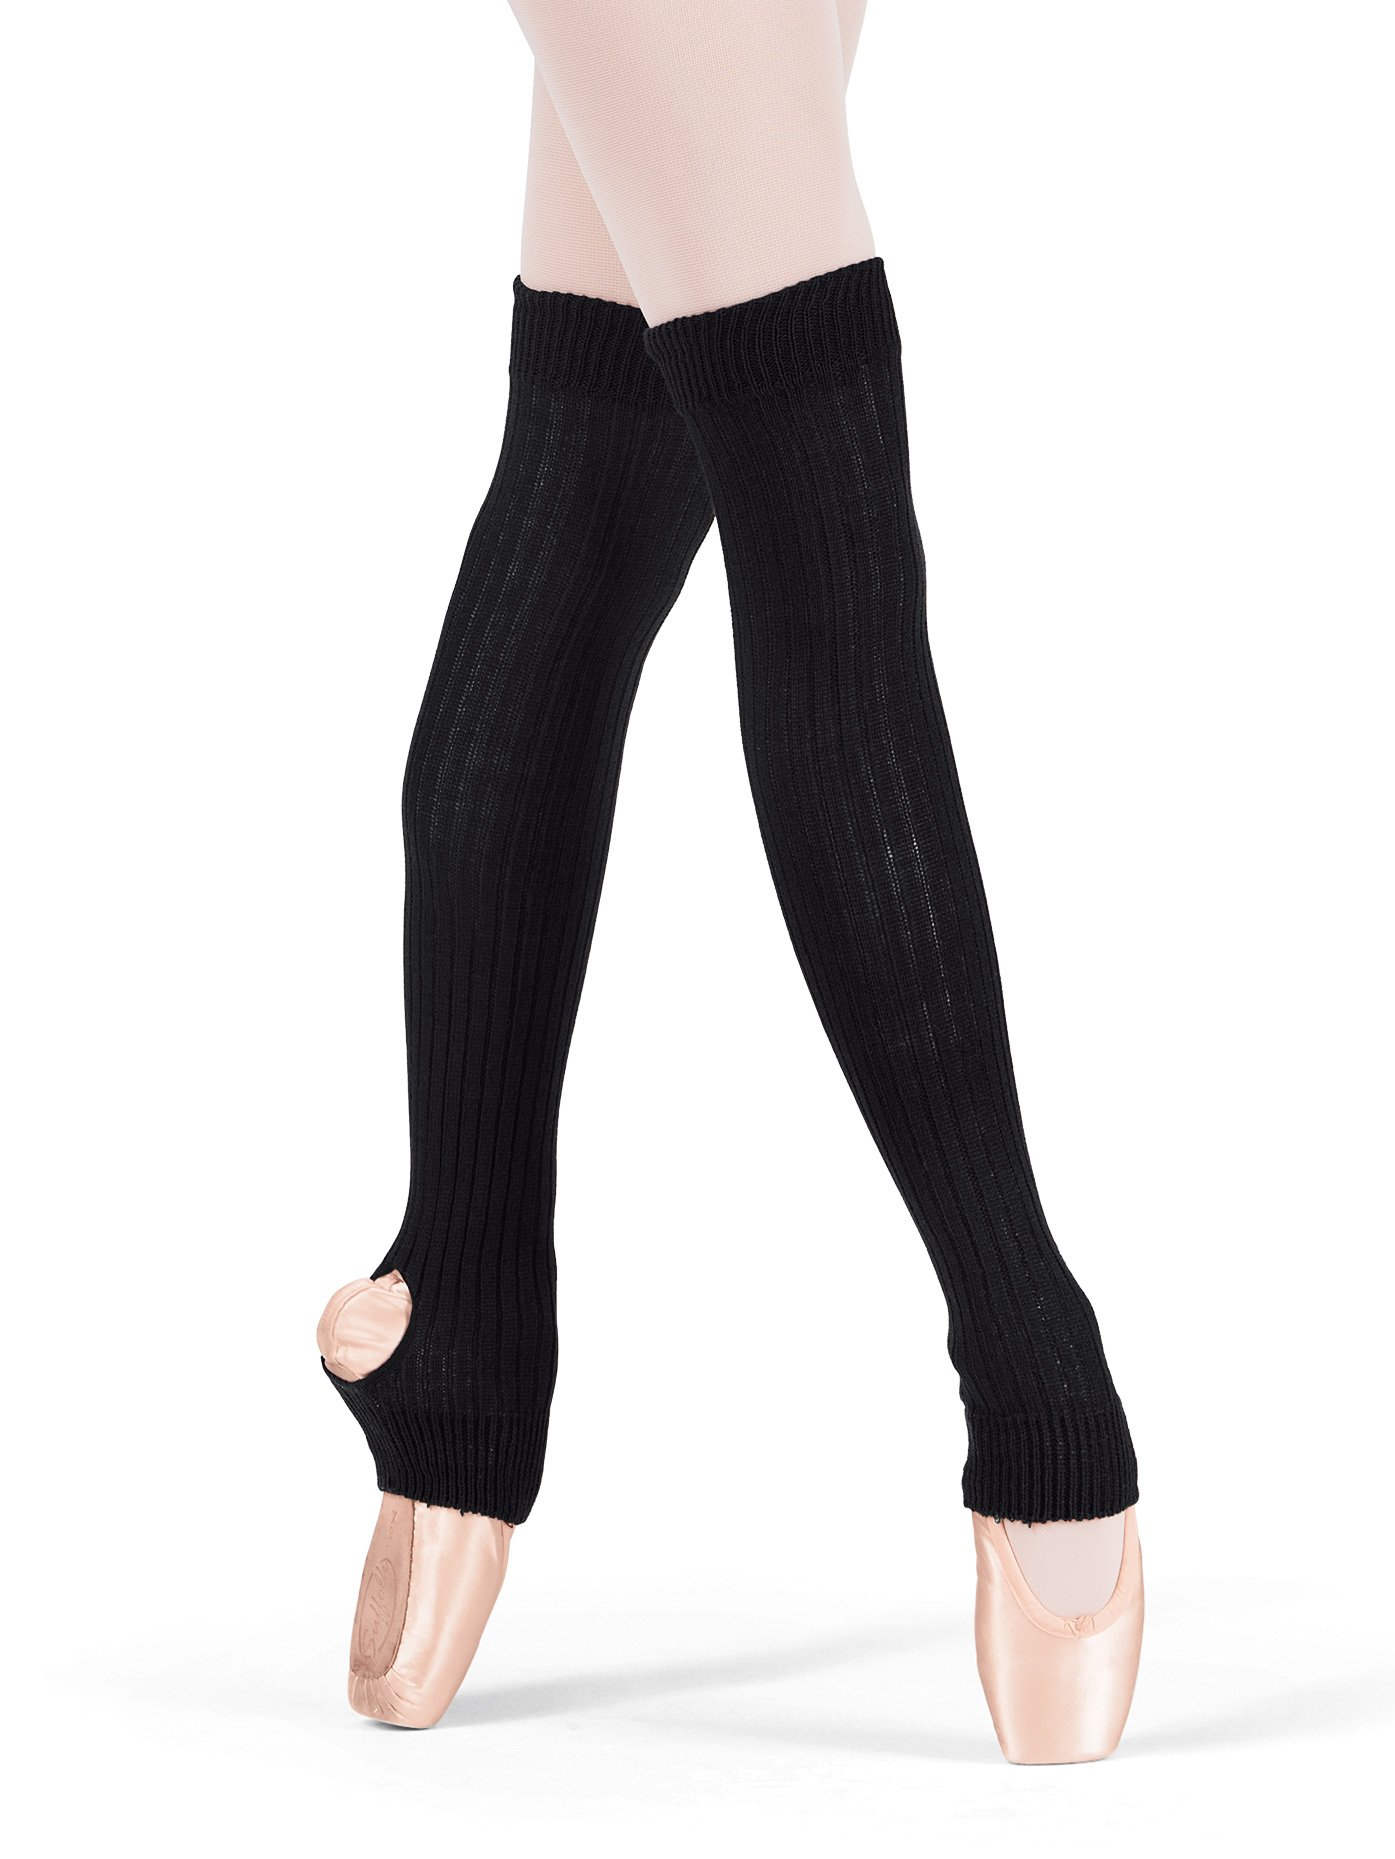 Body Wrappers Unisex Legwarmers 27 Inch Style 194, Black